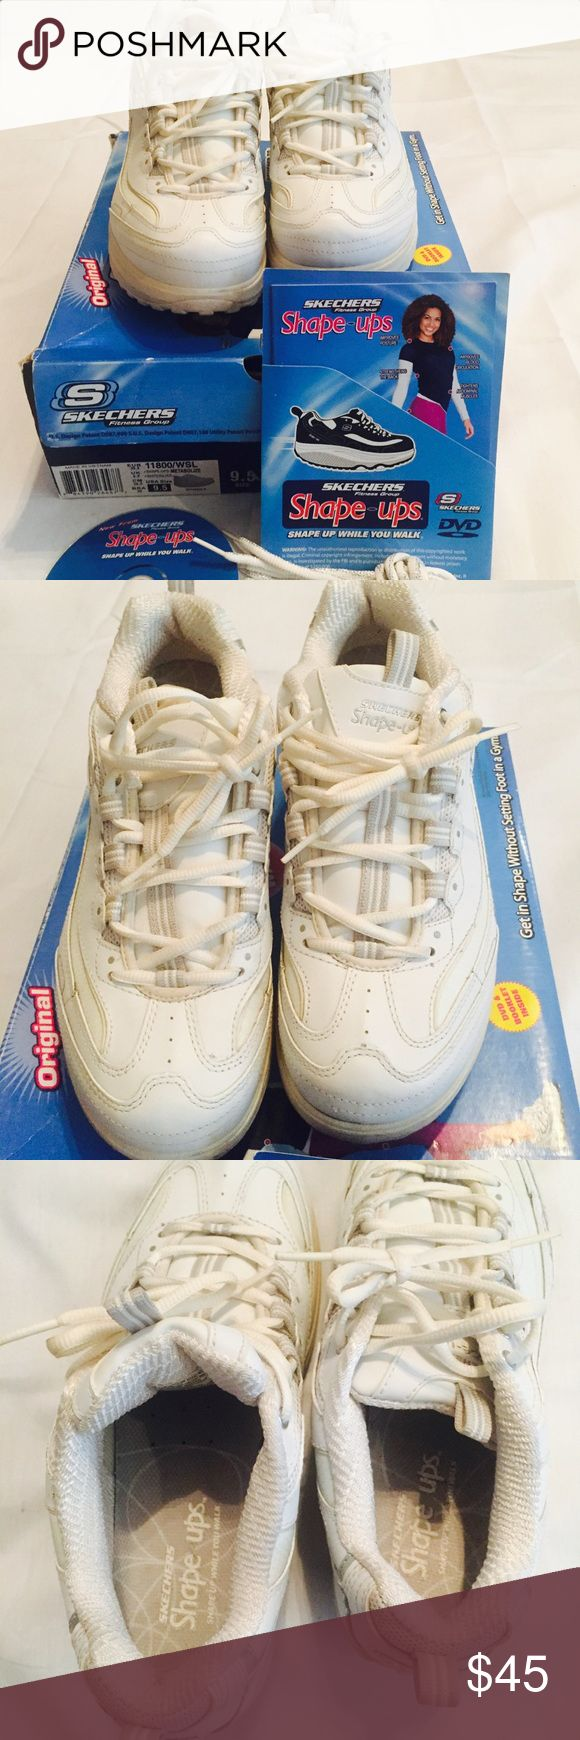 Skechers Womens shape ups shoes size 9.5 white Womens US 9.5 SKECHERS 11800 SHAPE UPS METABOLIZE Rocker Bottom Exercise Shoes Includes  DVD  booklet Extra glitter shoe laces Skechers Shoes Athletic Shoes